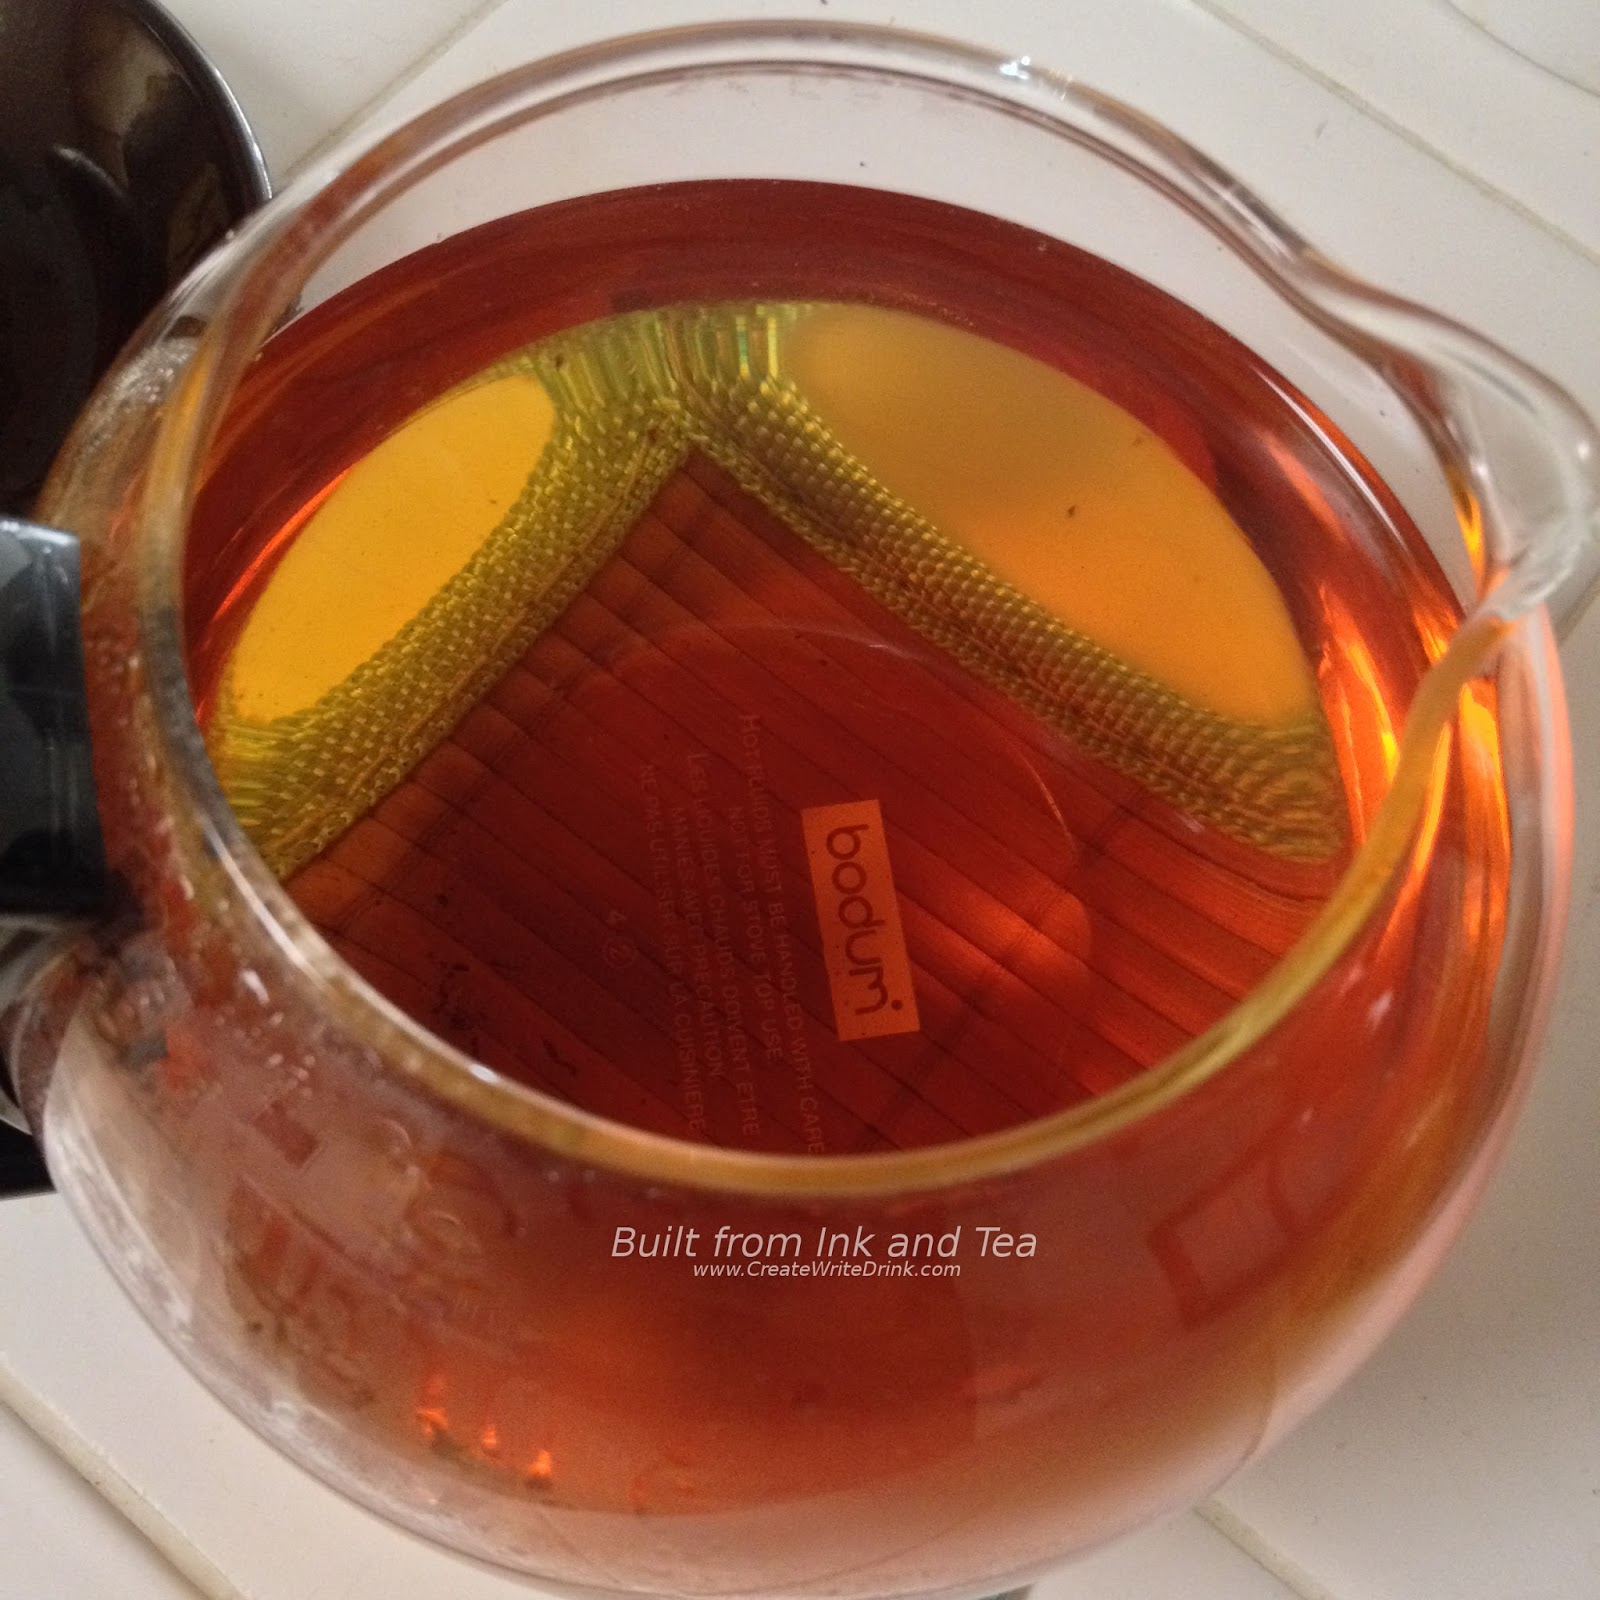 a summary of black tea Quick summary most tea has 15-70 mg caffeine / cup coffee tends to have 80-135 mg caffeine / cup it is a myth that green or white teas are always lower in caffeine than black.